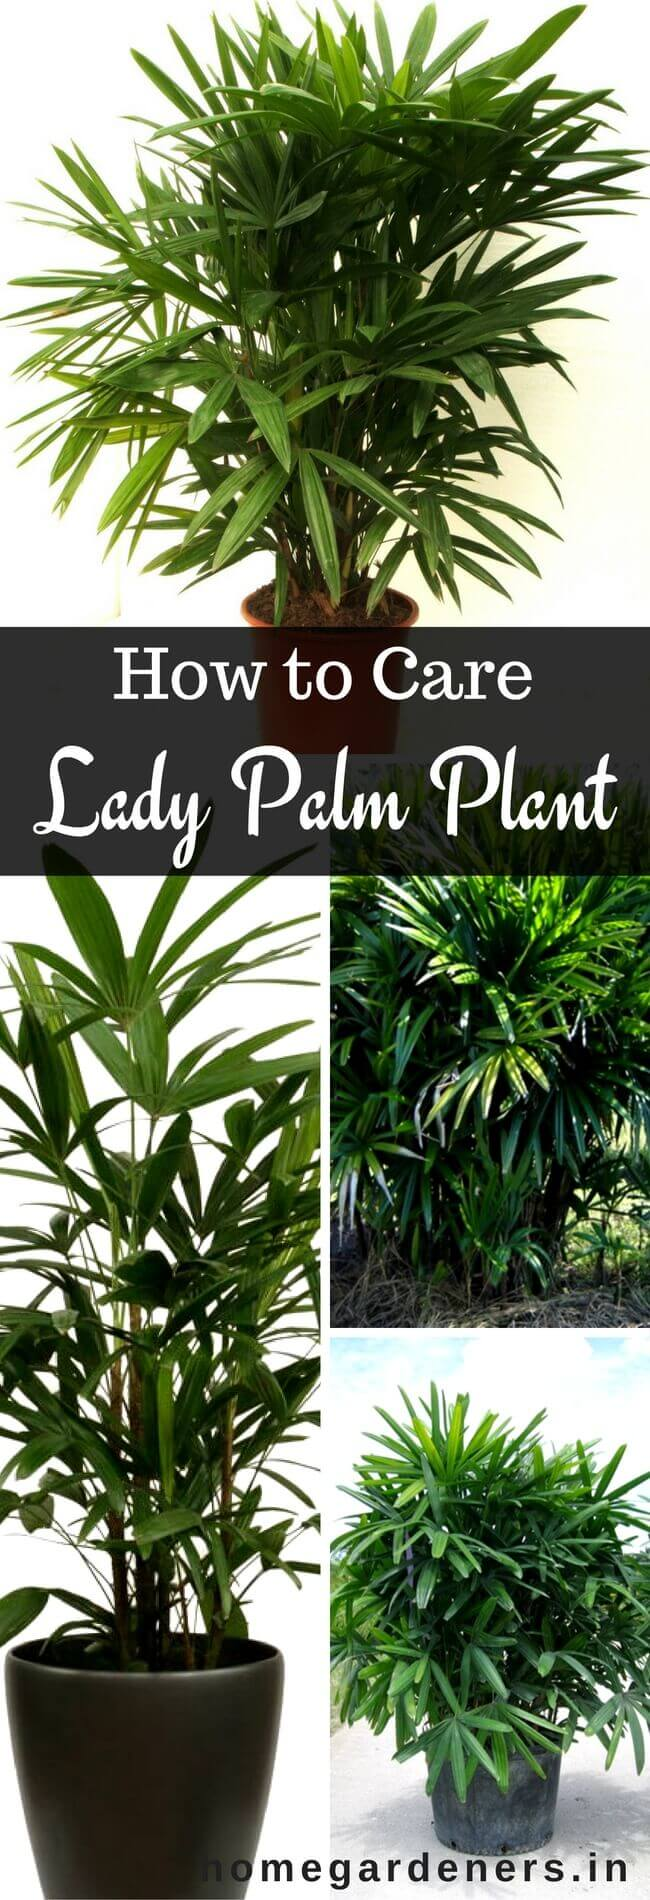 Rhapis Palm Care : How to Grow and Care for the Lady Palm Plant